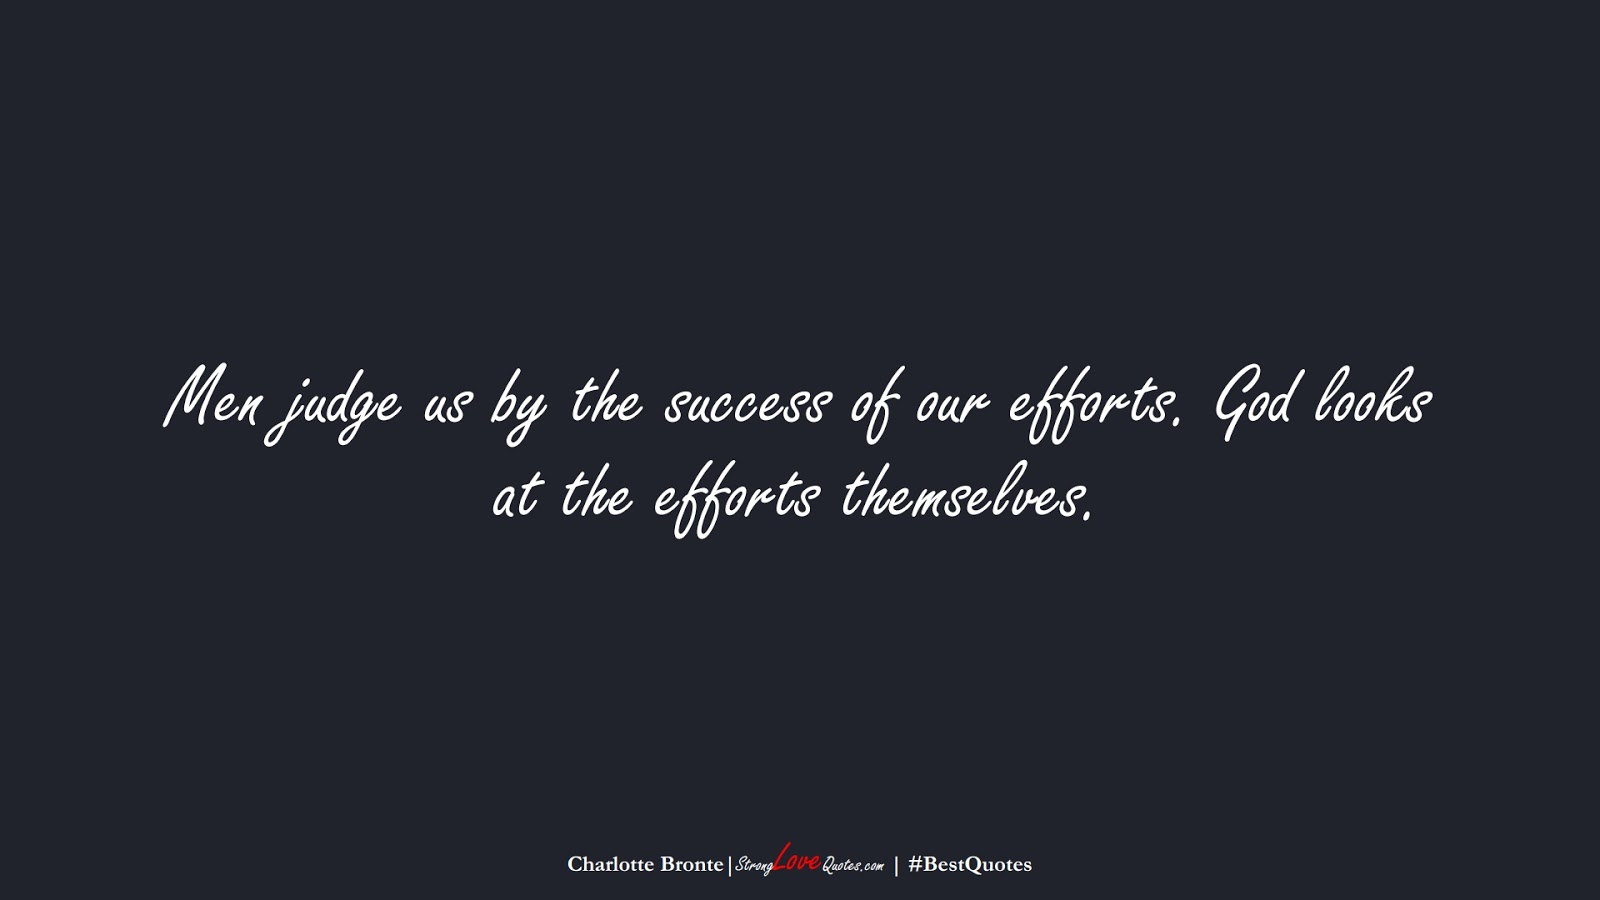 Men judge us by the success of our efforts. God looks at the efforts themselves. (Charlotte Bronte);  #BestQuotes